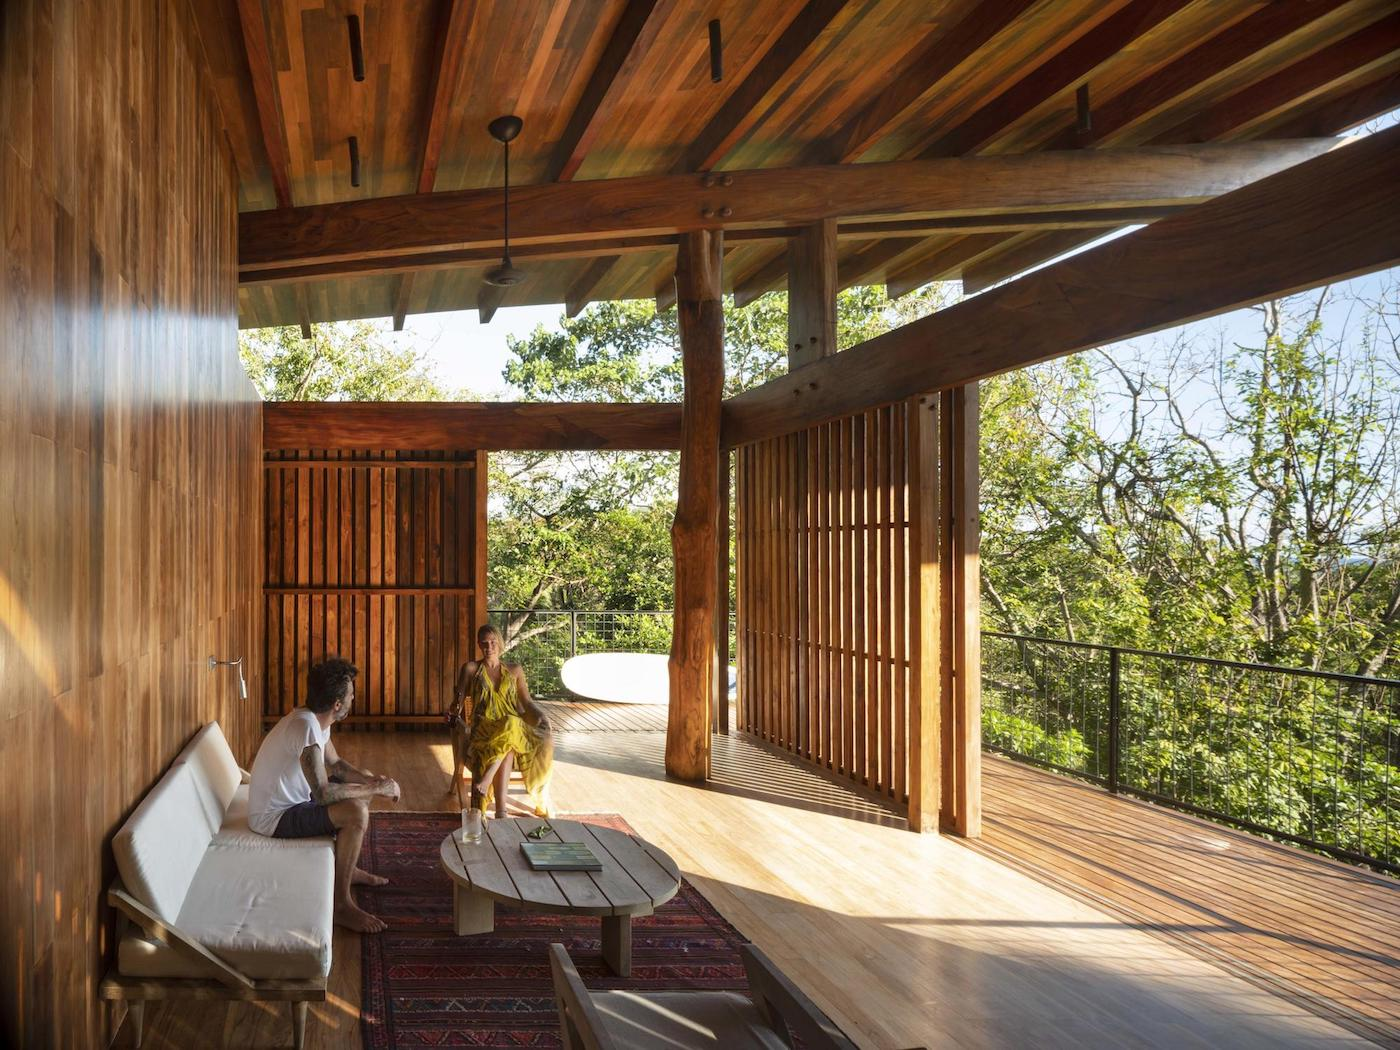 Man sitting on lounge in open-air timber home